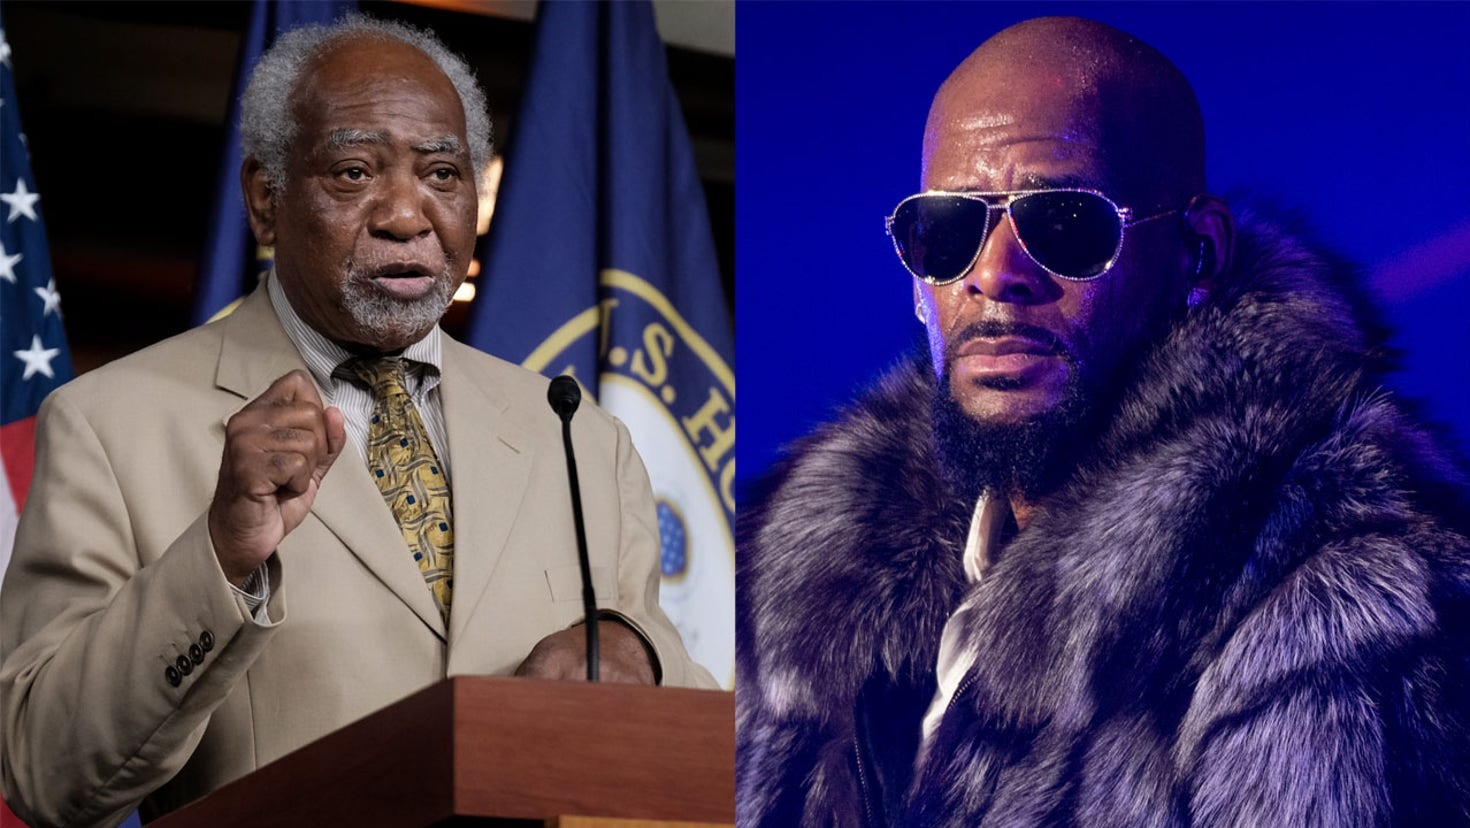 'R. Kelly can be redeemed' – US politician, Danny Davis deserves a second chance after serving time for racketeering and sex crimess